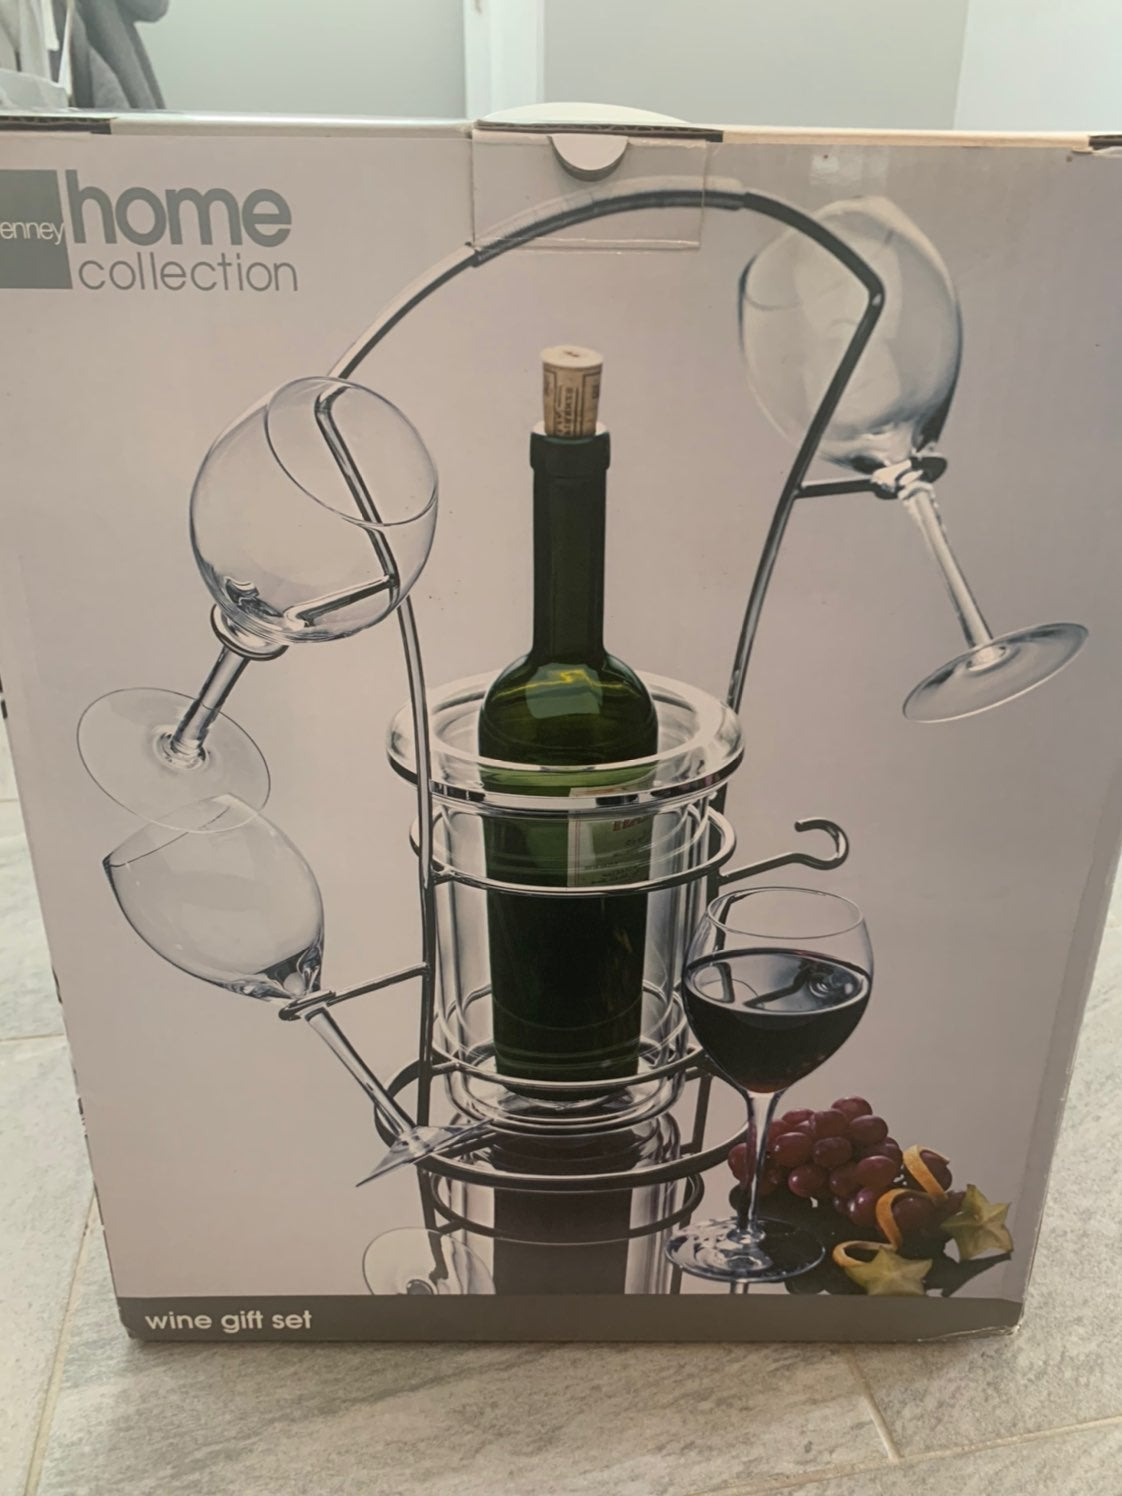 6 Piece Wine Gift Set (no wine included)